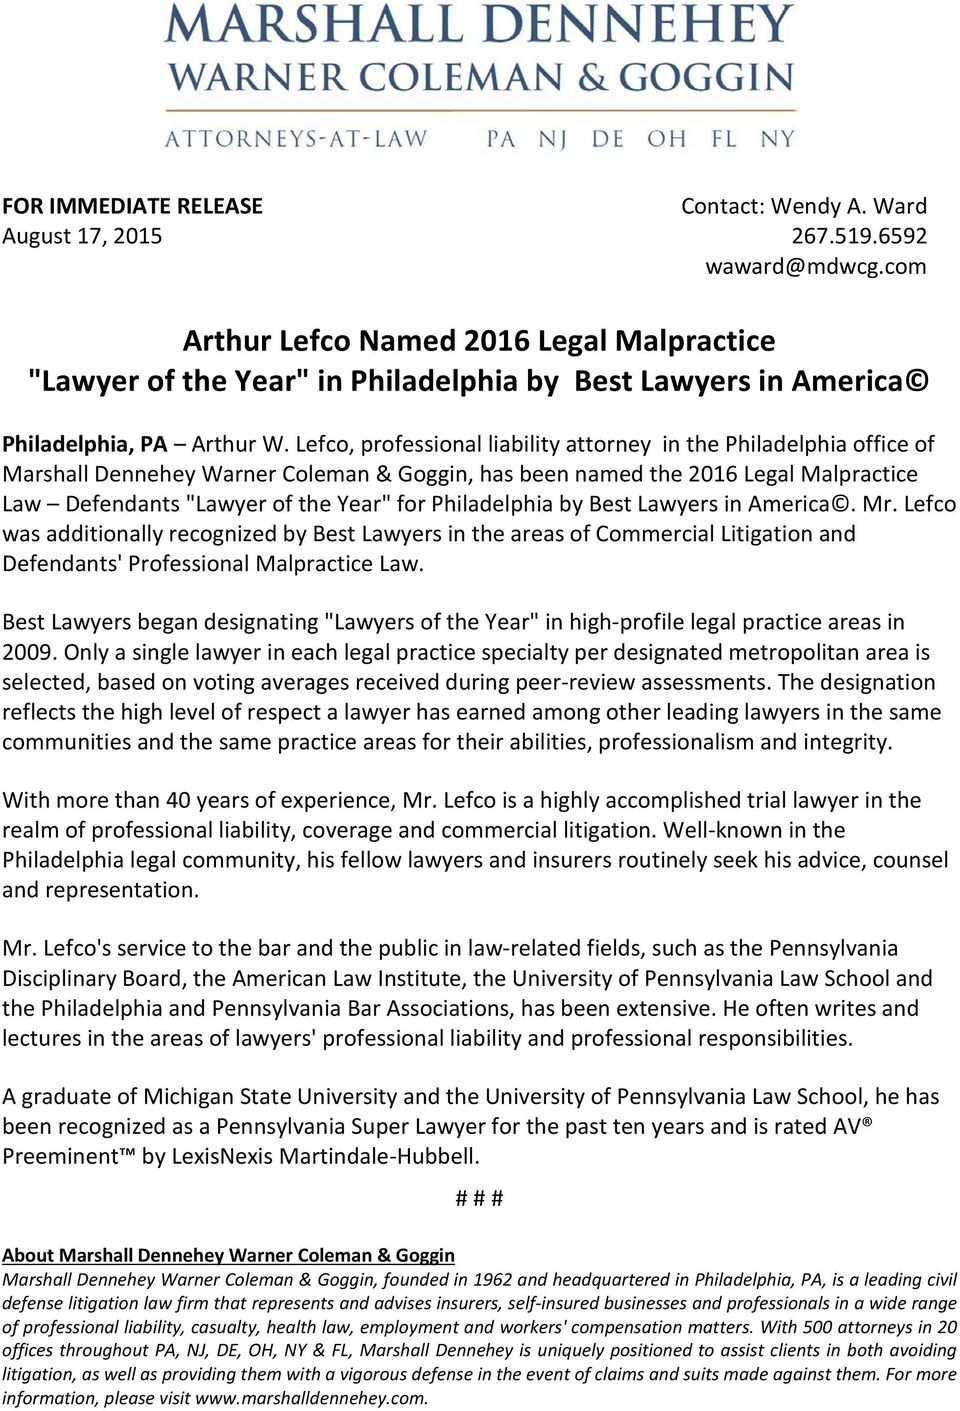 Philadelphia by Best Lawyers in America. Mr. Lefco was additionally recognized by Best Lawyers in the areas of Commercial Litigation and Defendants' Professional Malpractice Law.